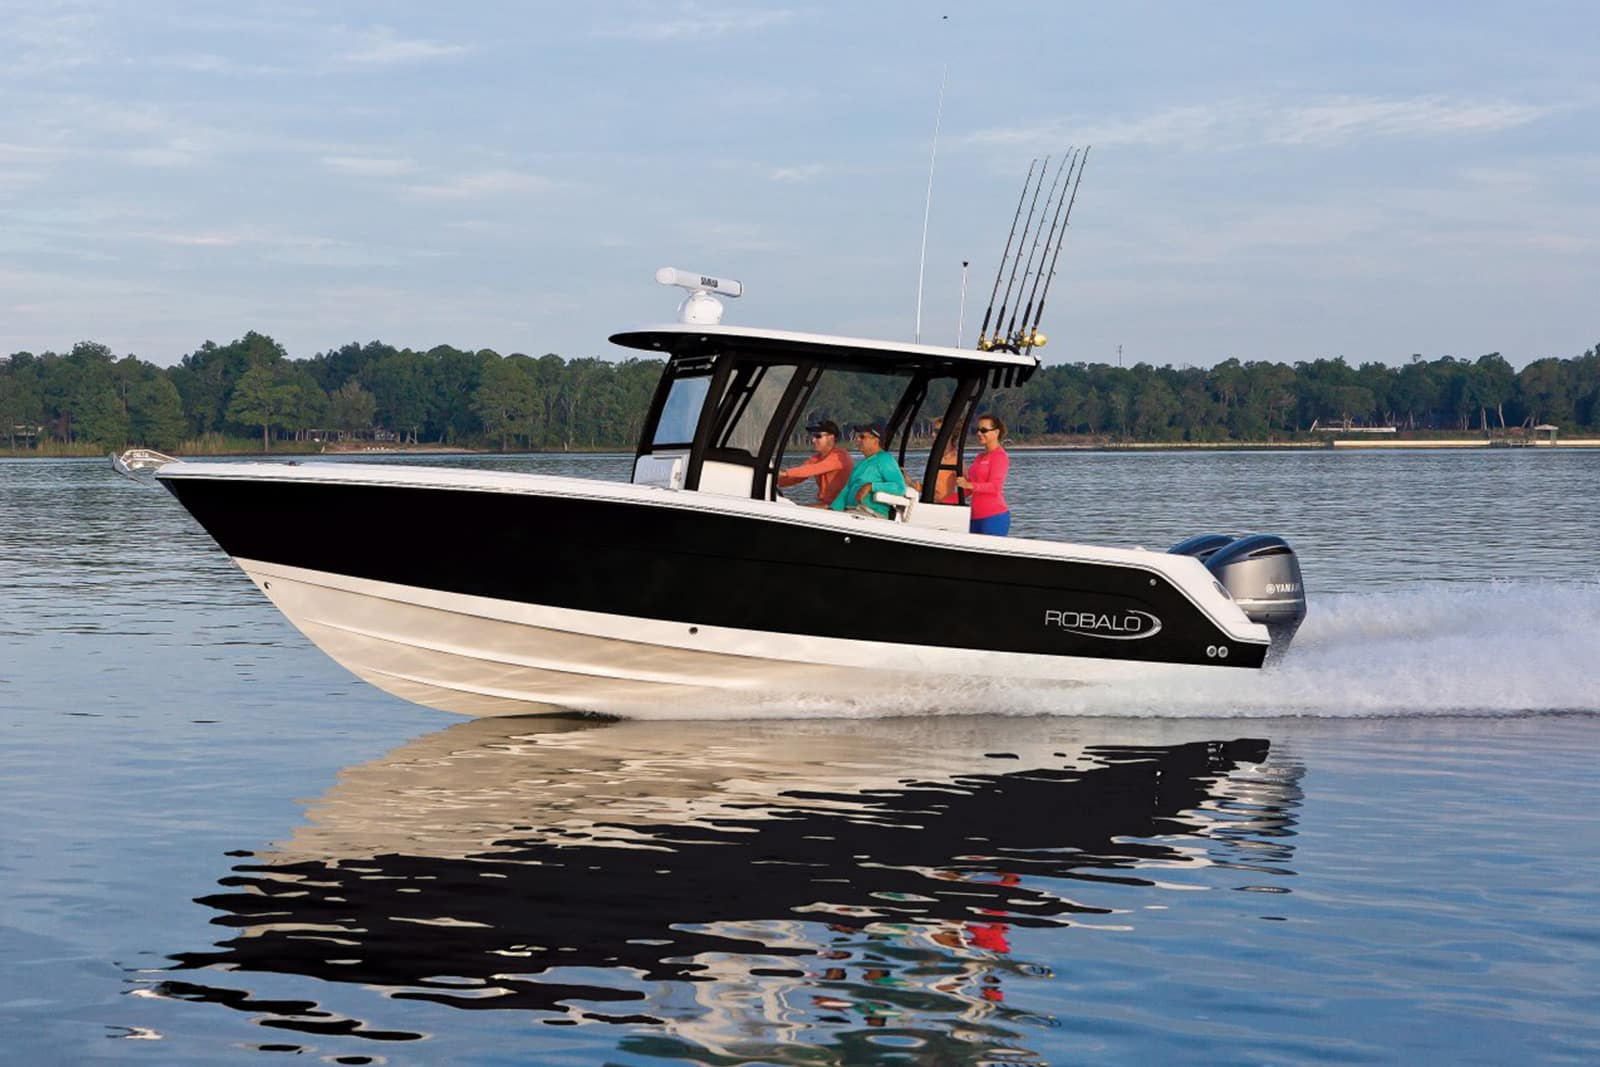 Pride Marine Group | Ontario's Leading New & Used Boat